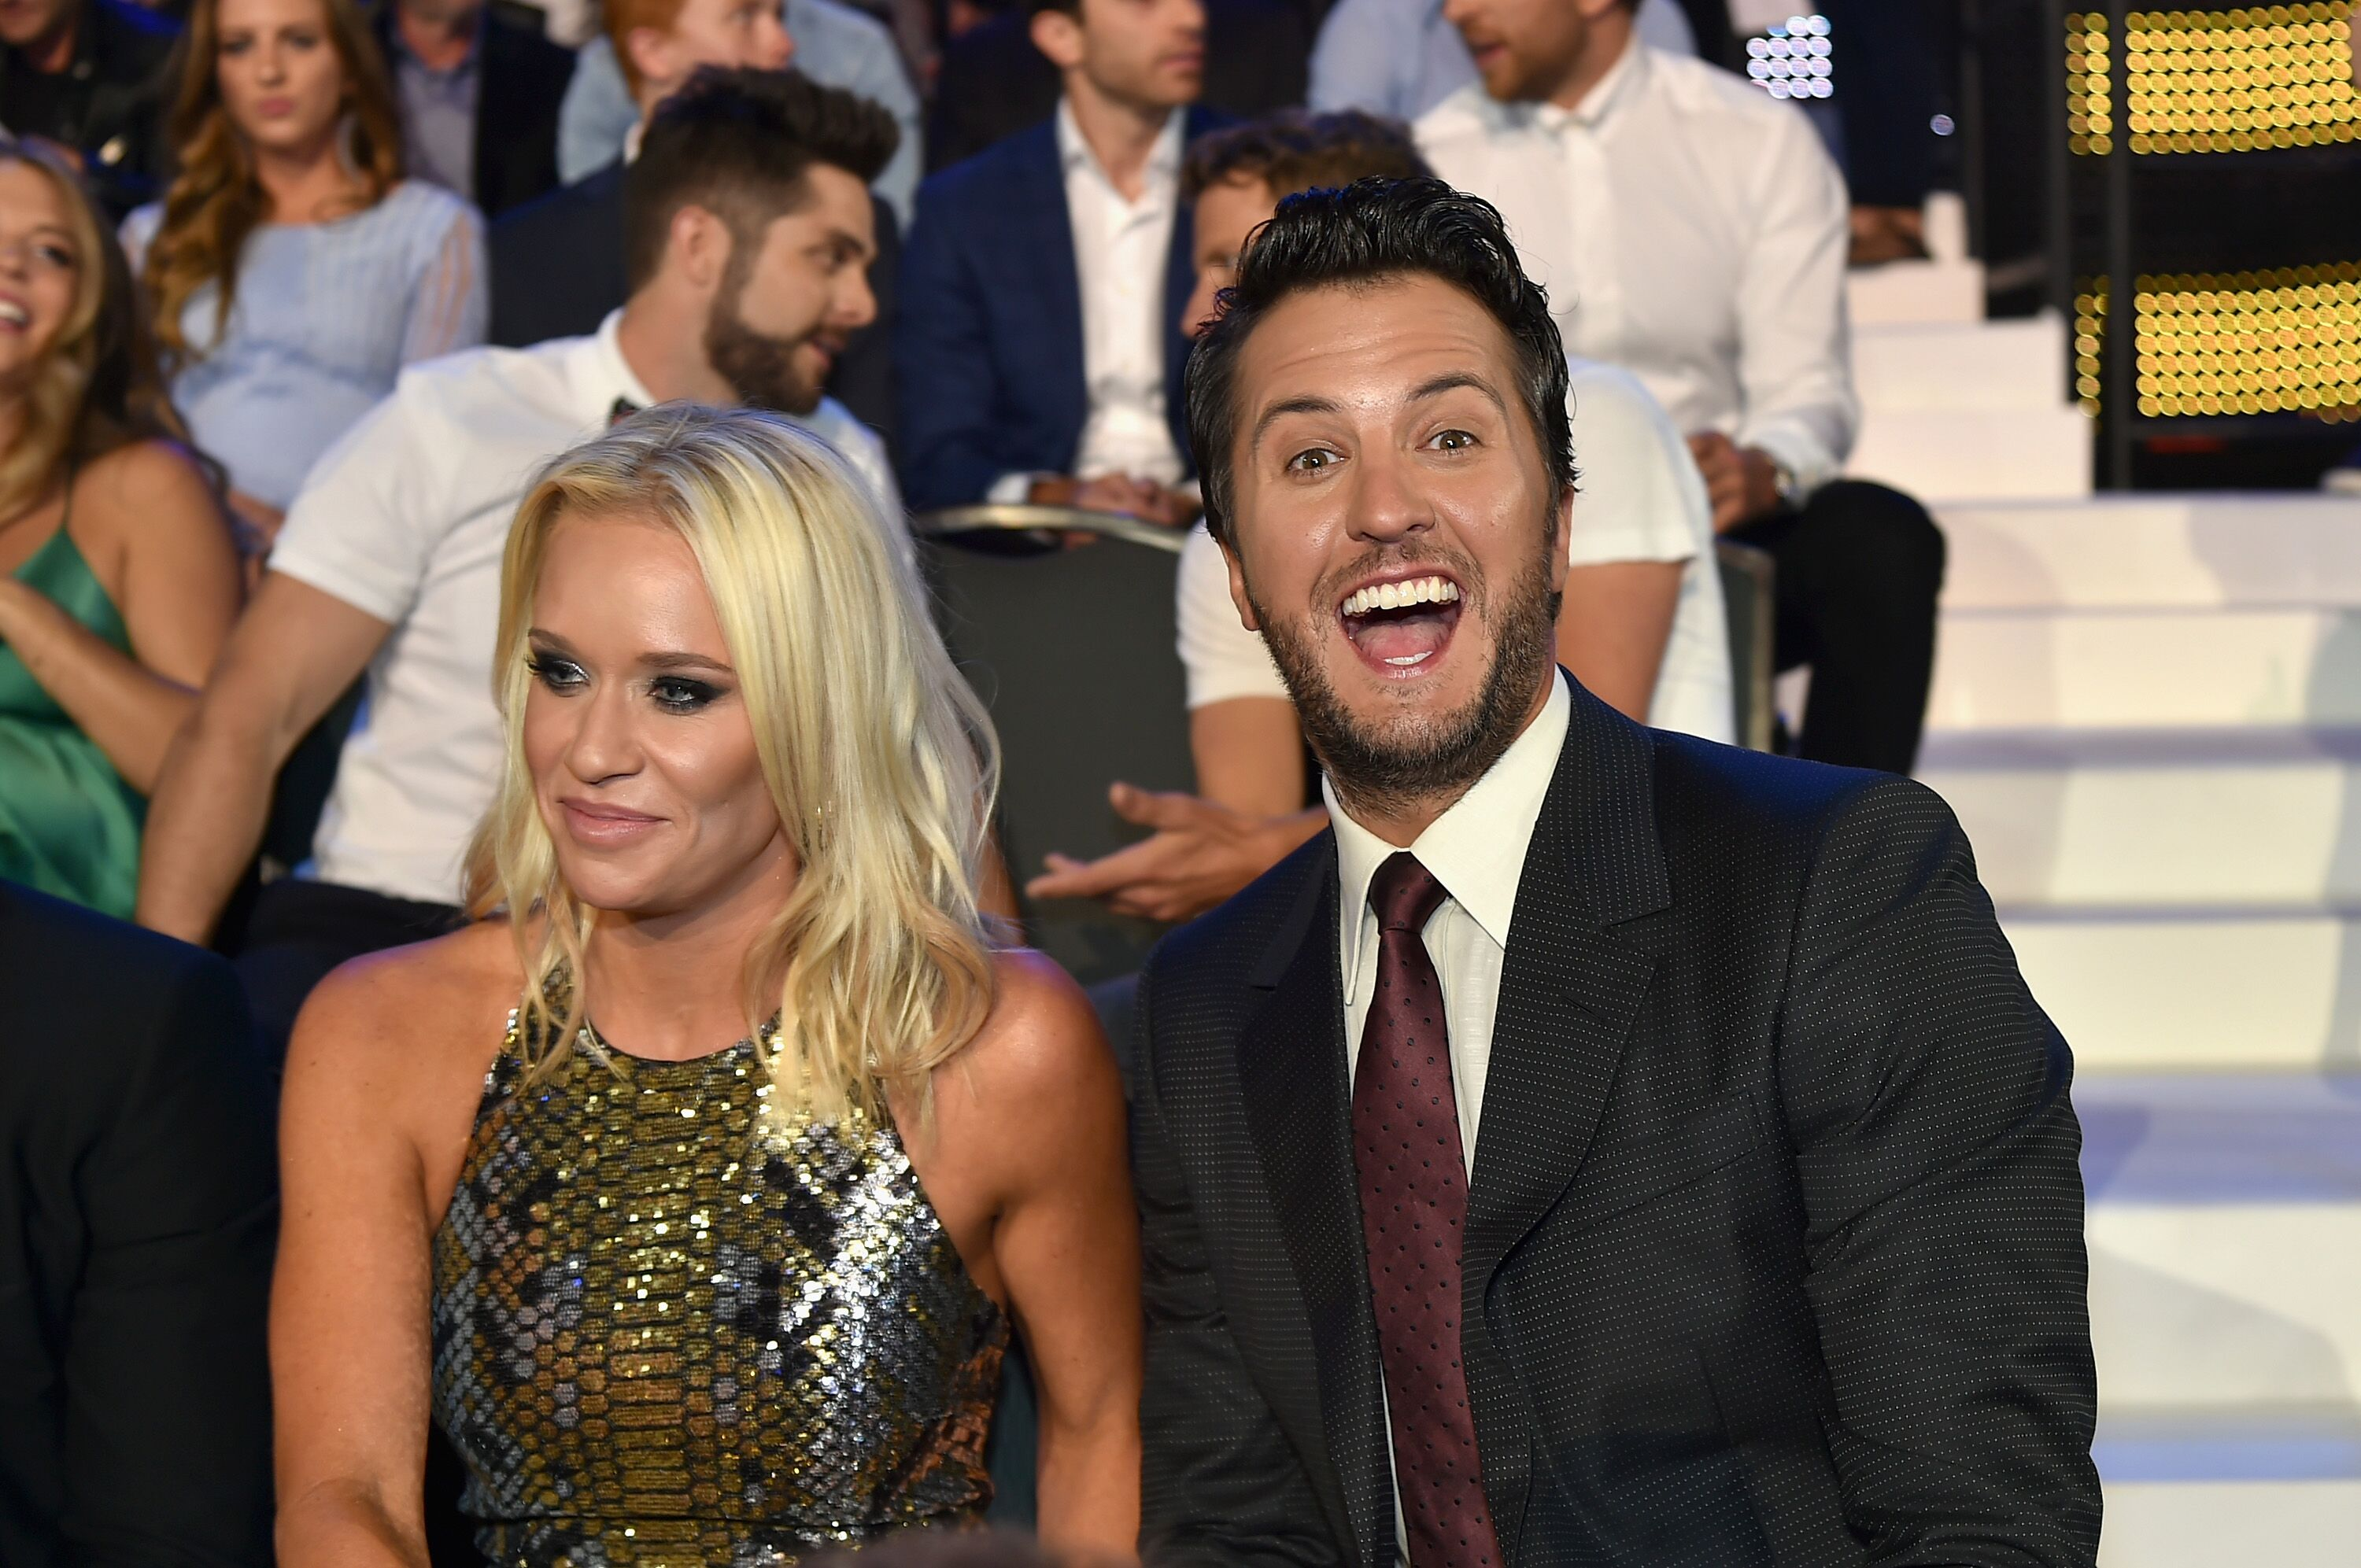 Luke Bryan (R) and Caroline Boyer (L) watch the 2017 CMT Music awards at the Music City Center | Getty Images / Global Images Ukraine